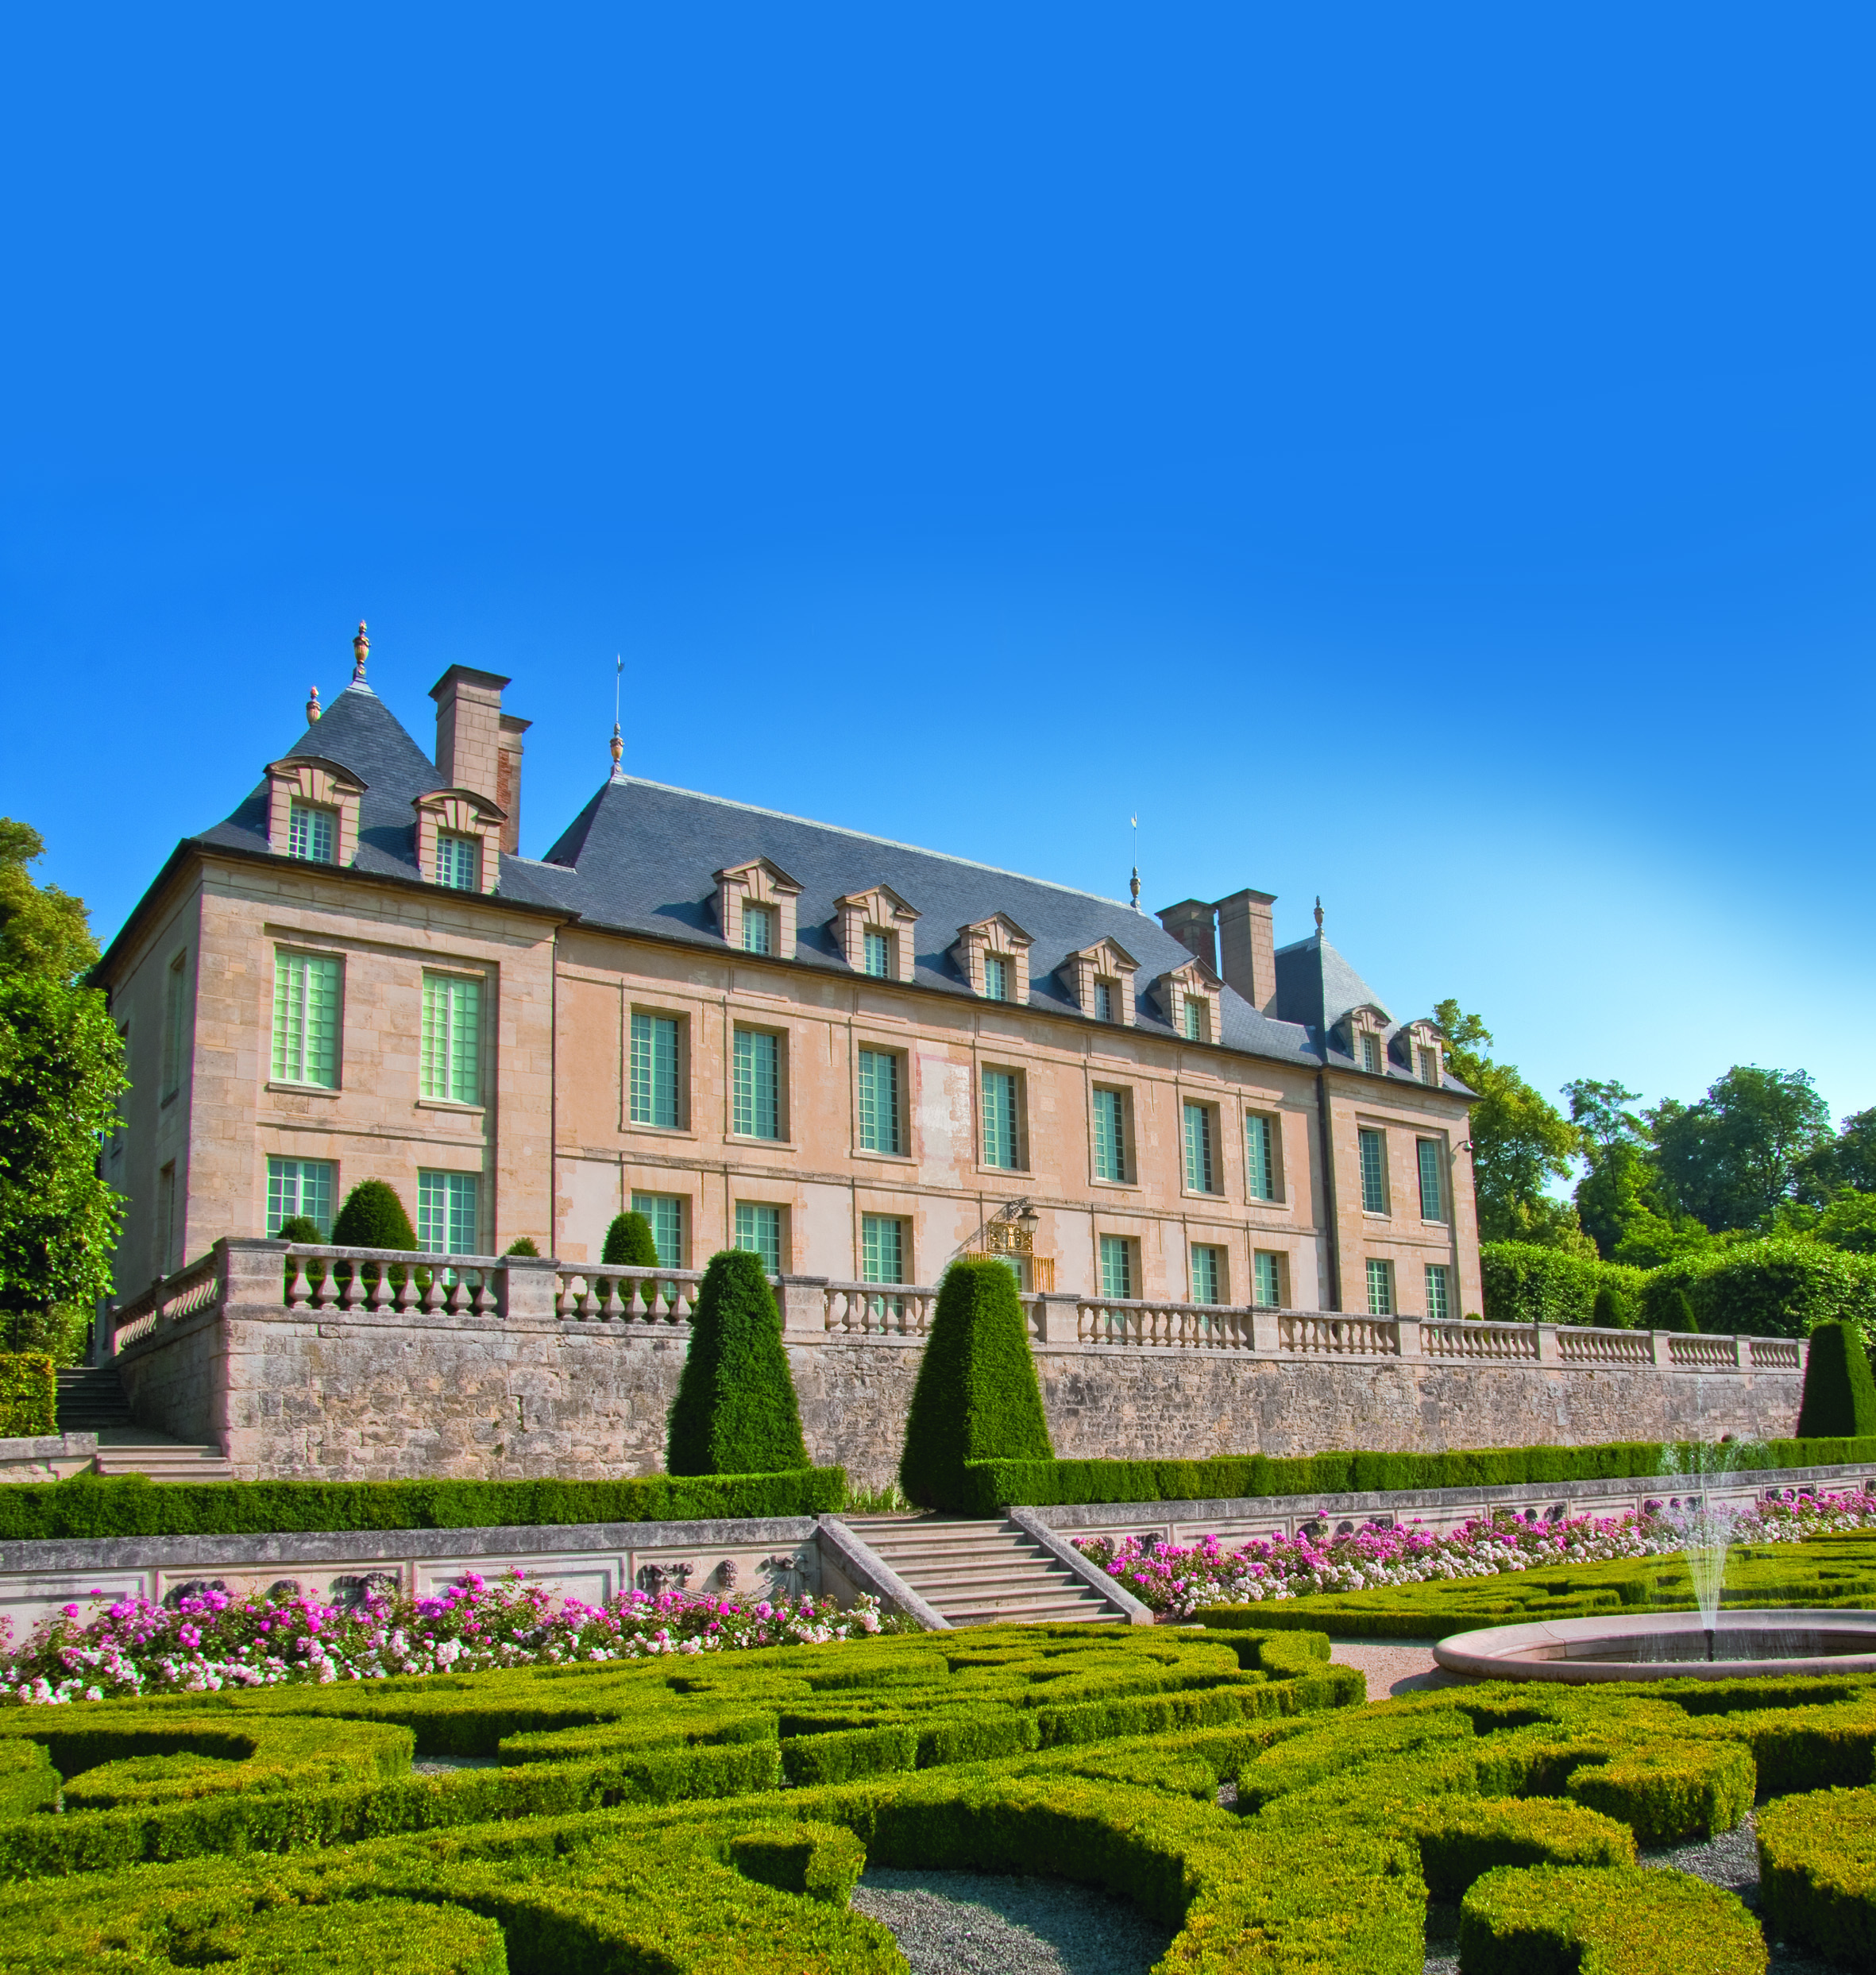 Stroll in the gardens of the Château d'Auvers